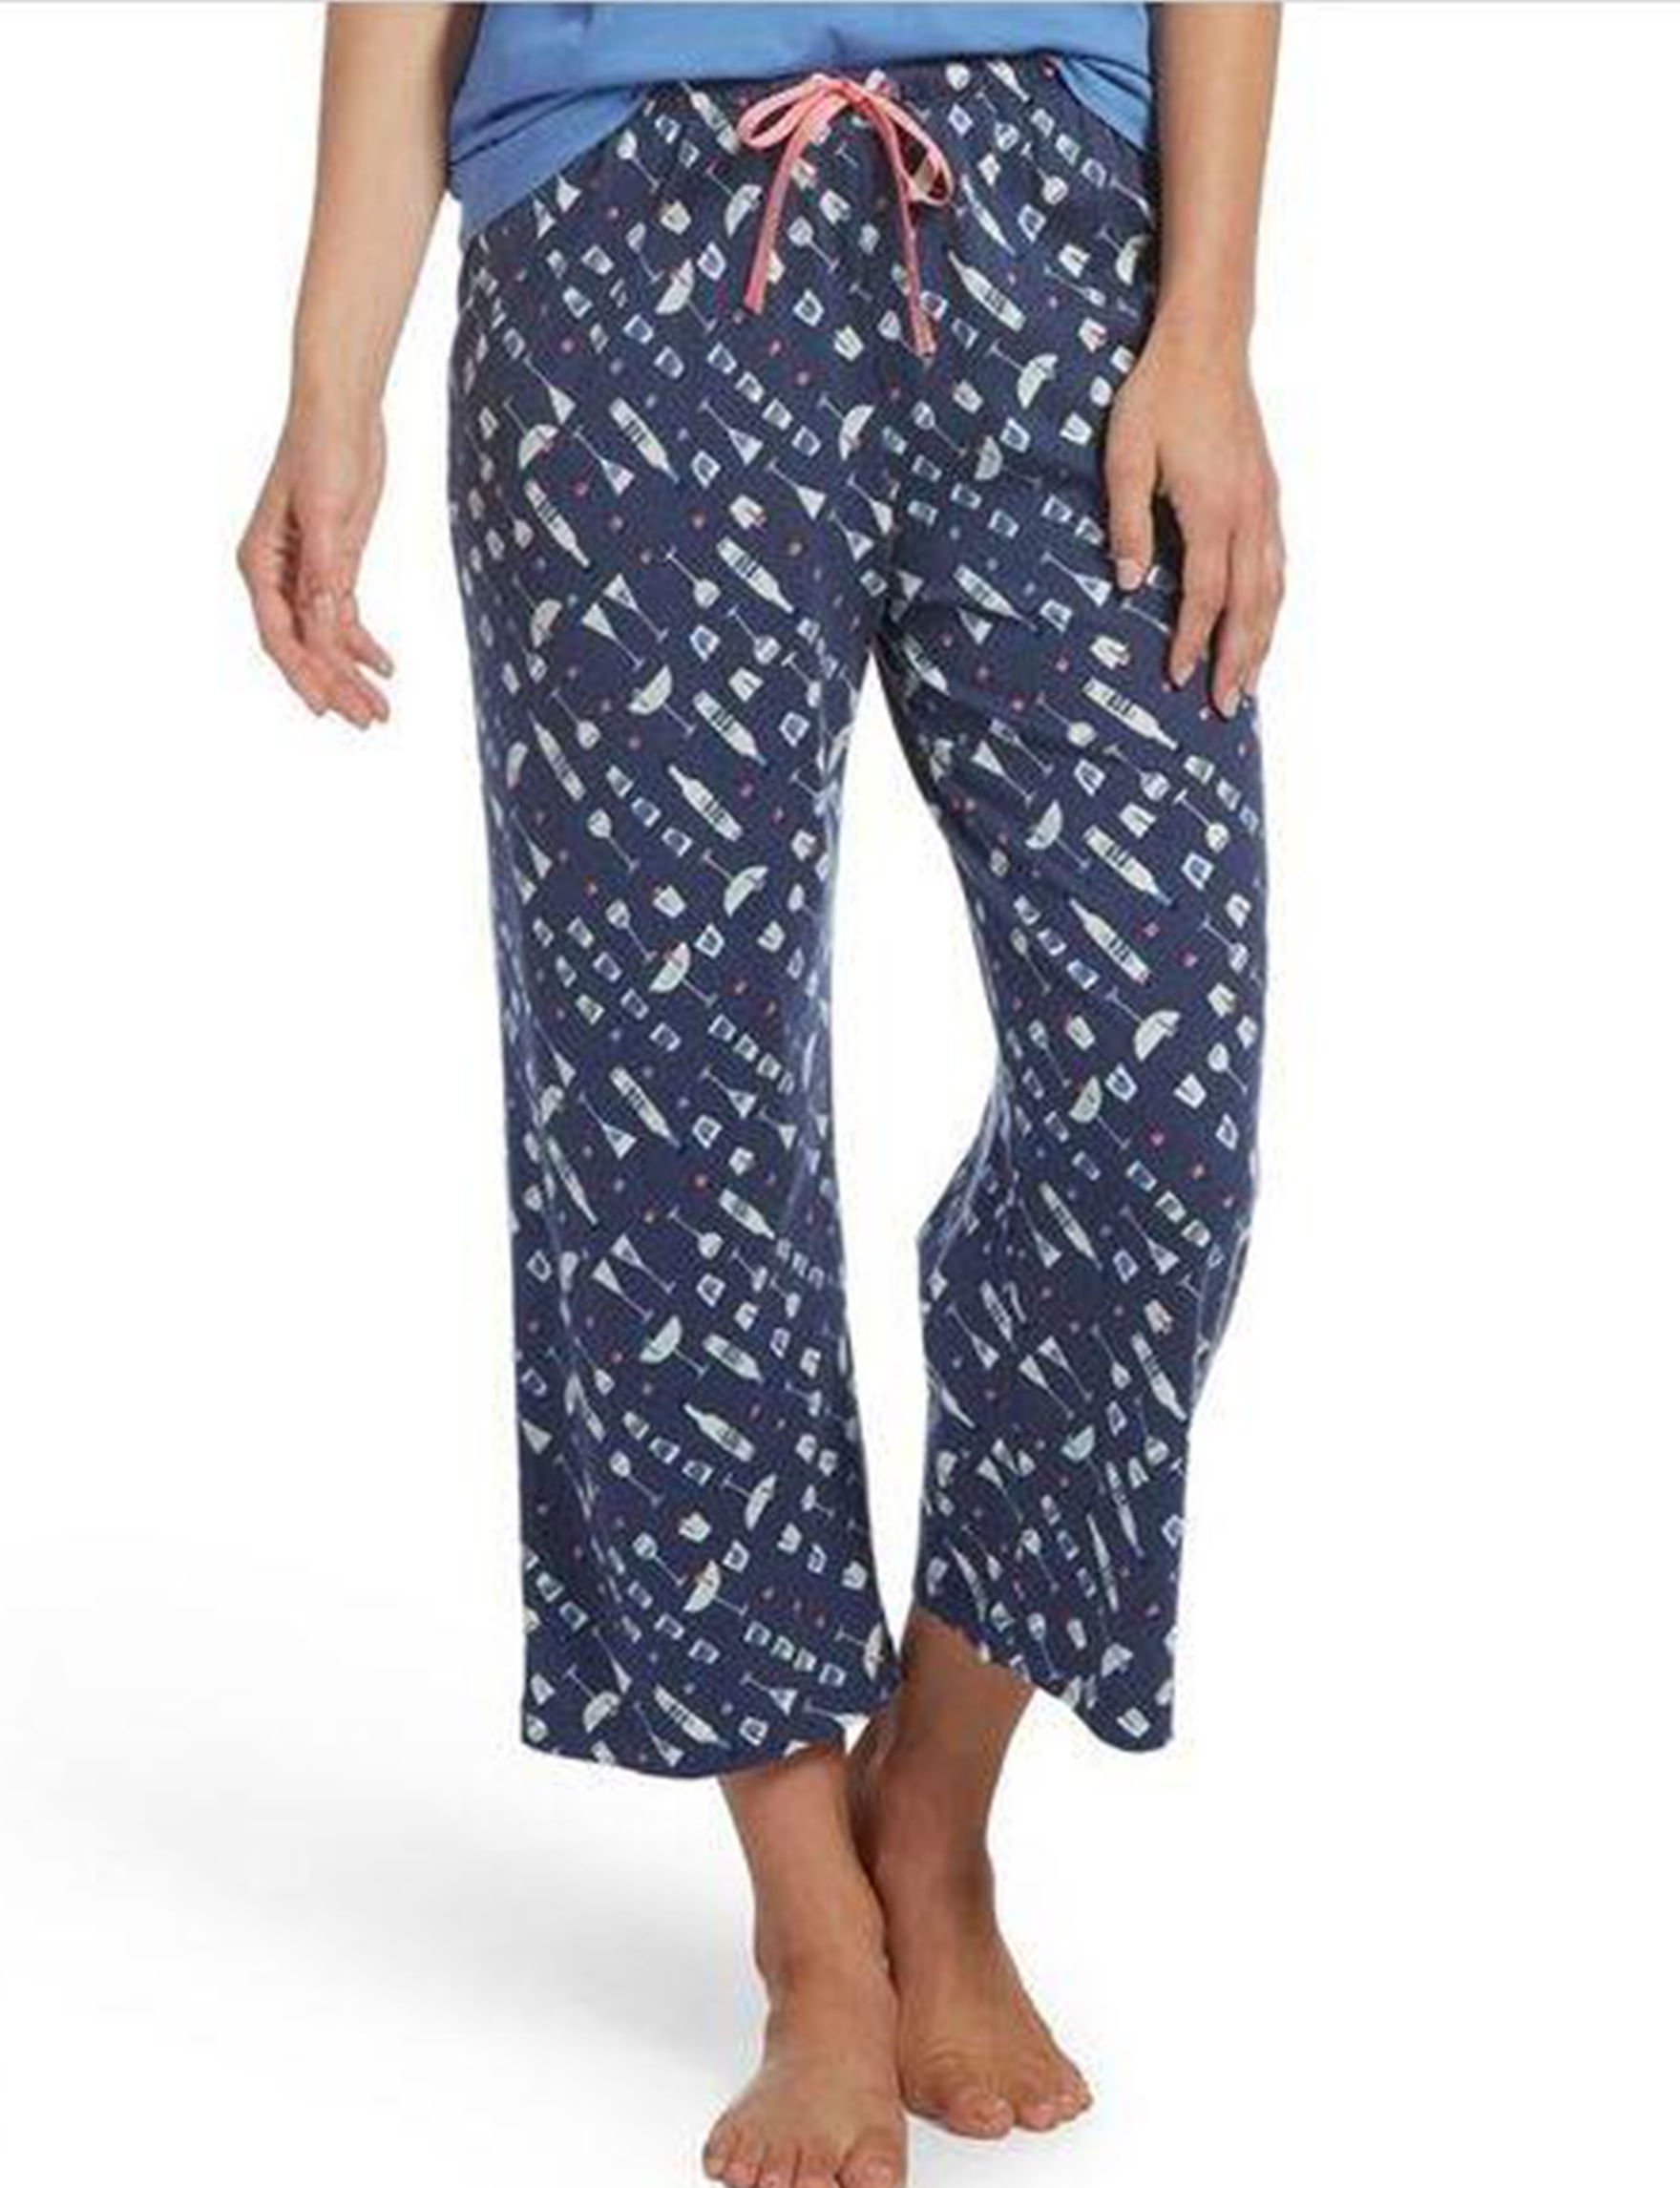 Hue Navy Pajama Bottoms